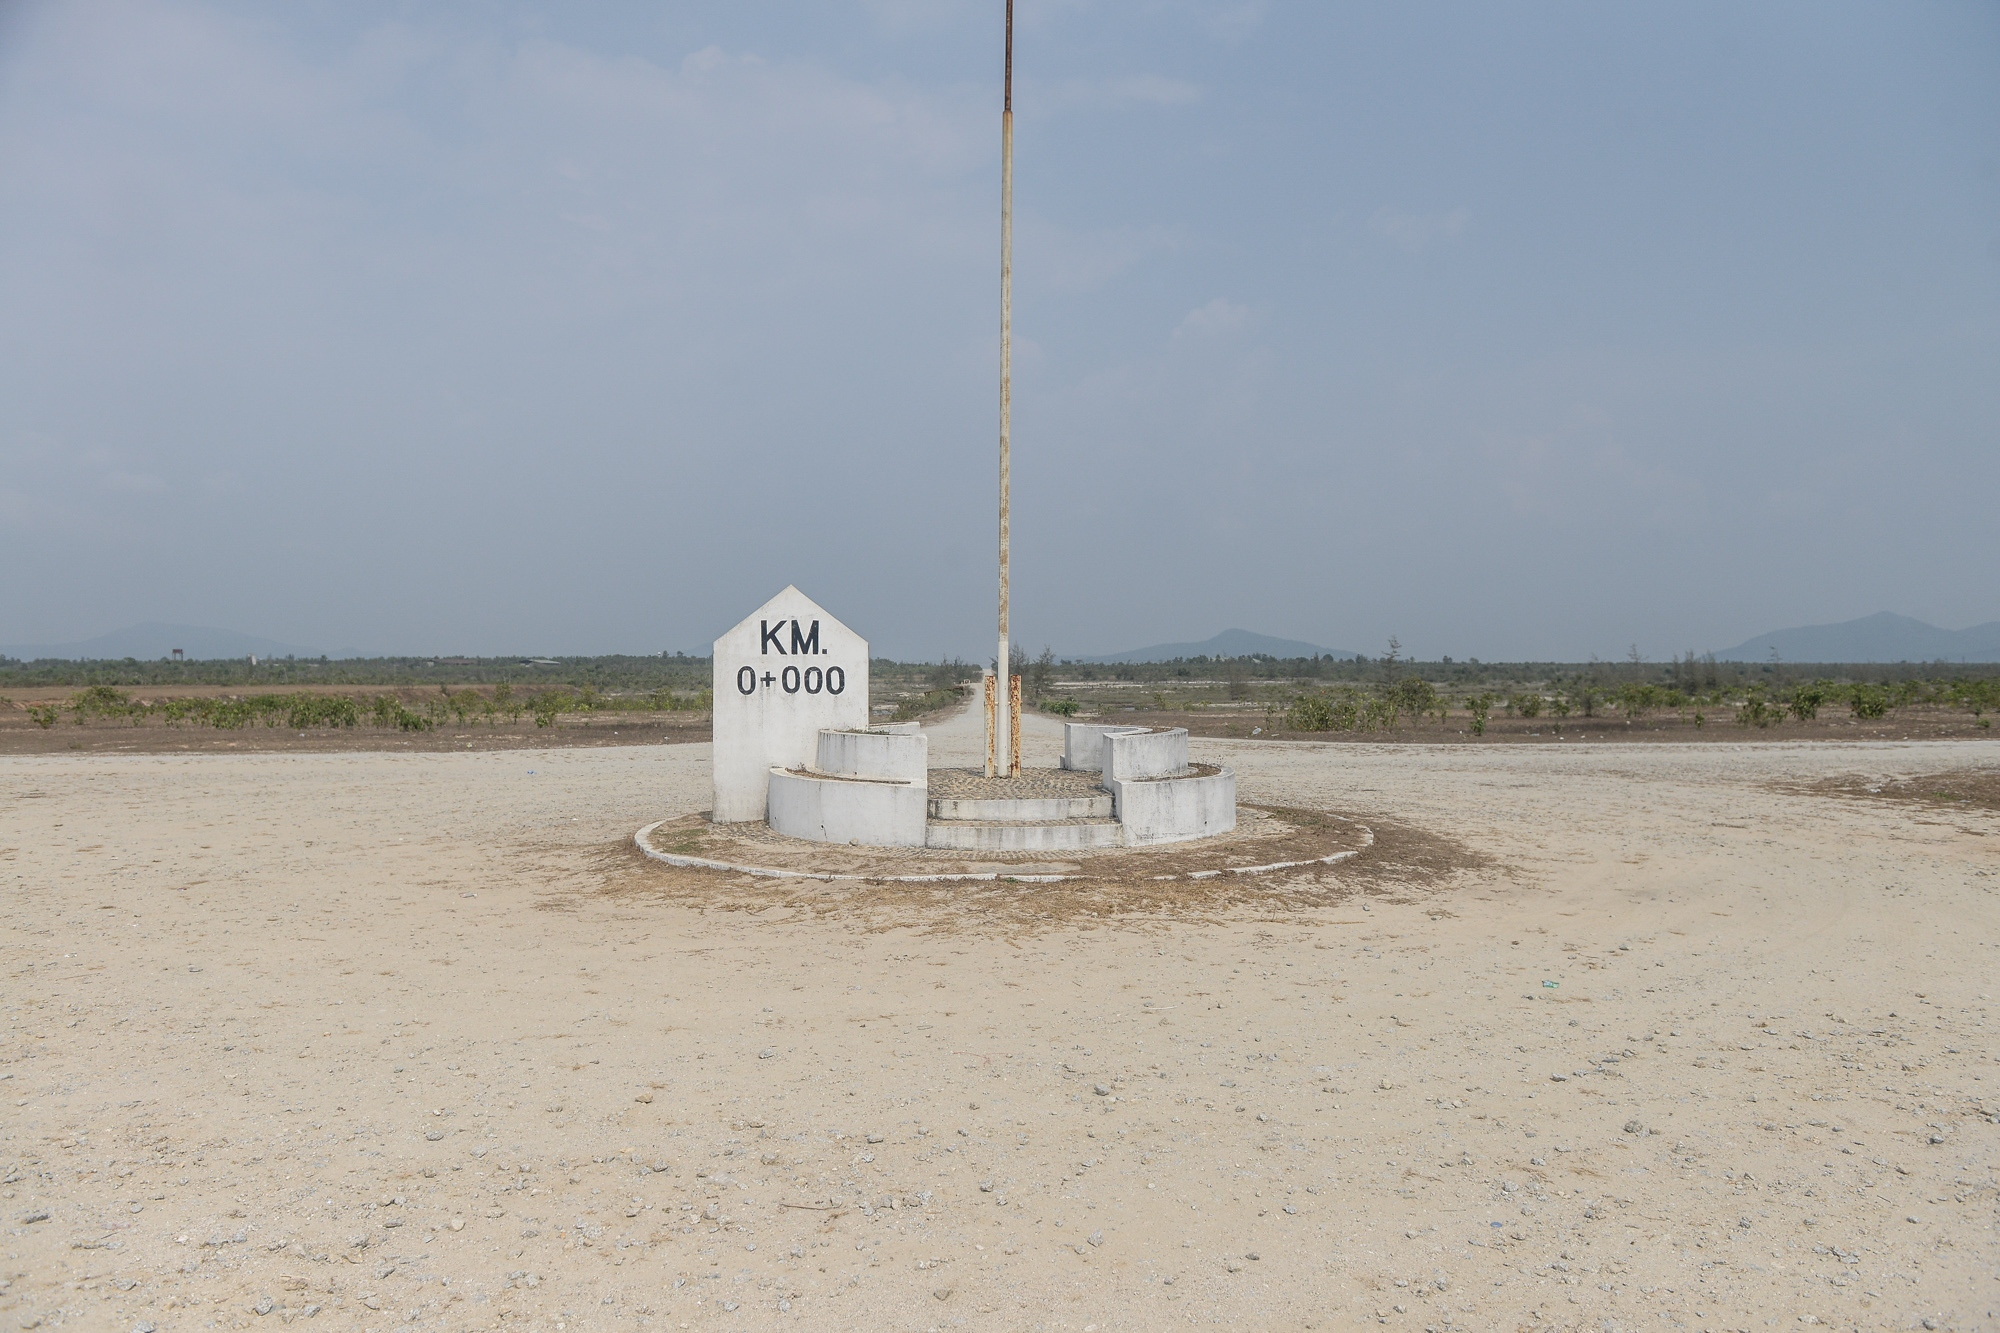 A zero-mile marker at the edge of the Andaman Sea in Dawei to mark the beginning of the road leading from Dawei SEZ to Kanjanaburi province in western Thailand. After completion, the project will consist of a deep-sea port, an oil refinery, a steel mill, fertilizer and petrochemical plants, etcetera and will become one of the largest industrial zones in Southeast Asia. However, the project has been facing much controversy and community opposition both from Myanmar and Thai civil society groups.